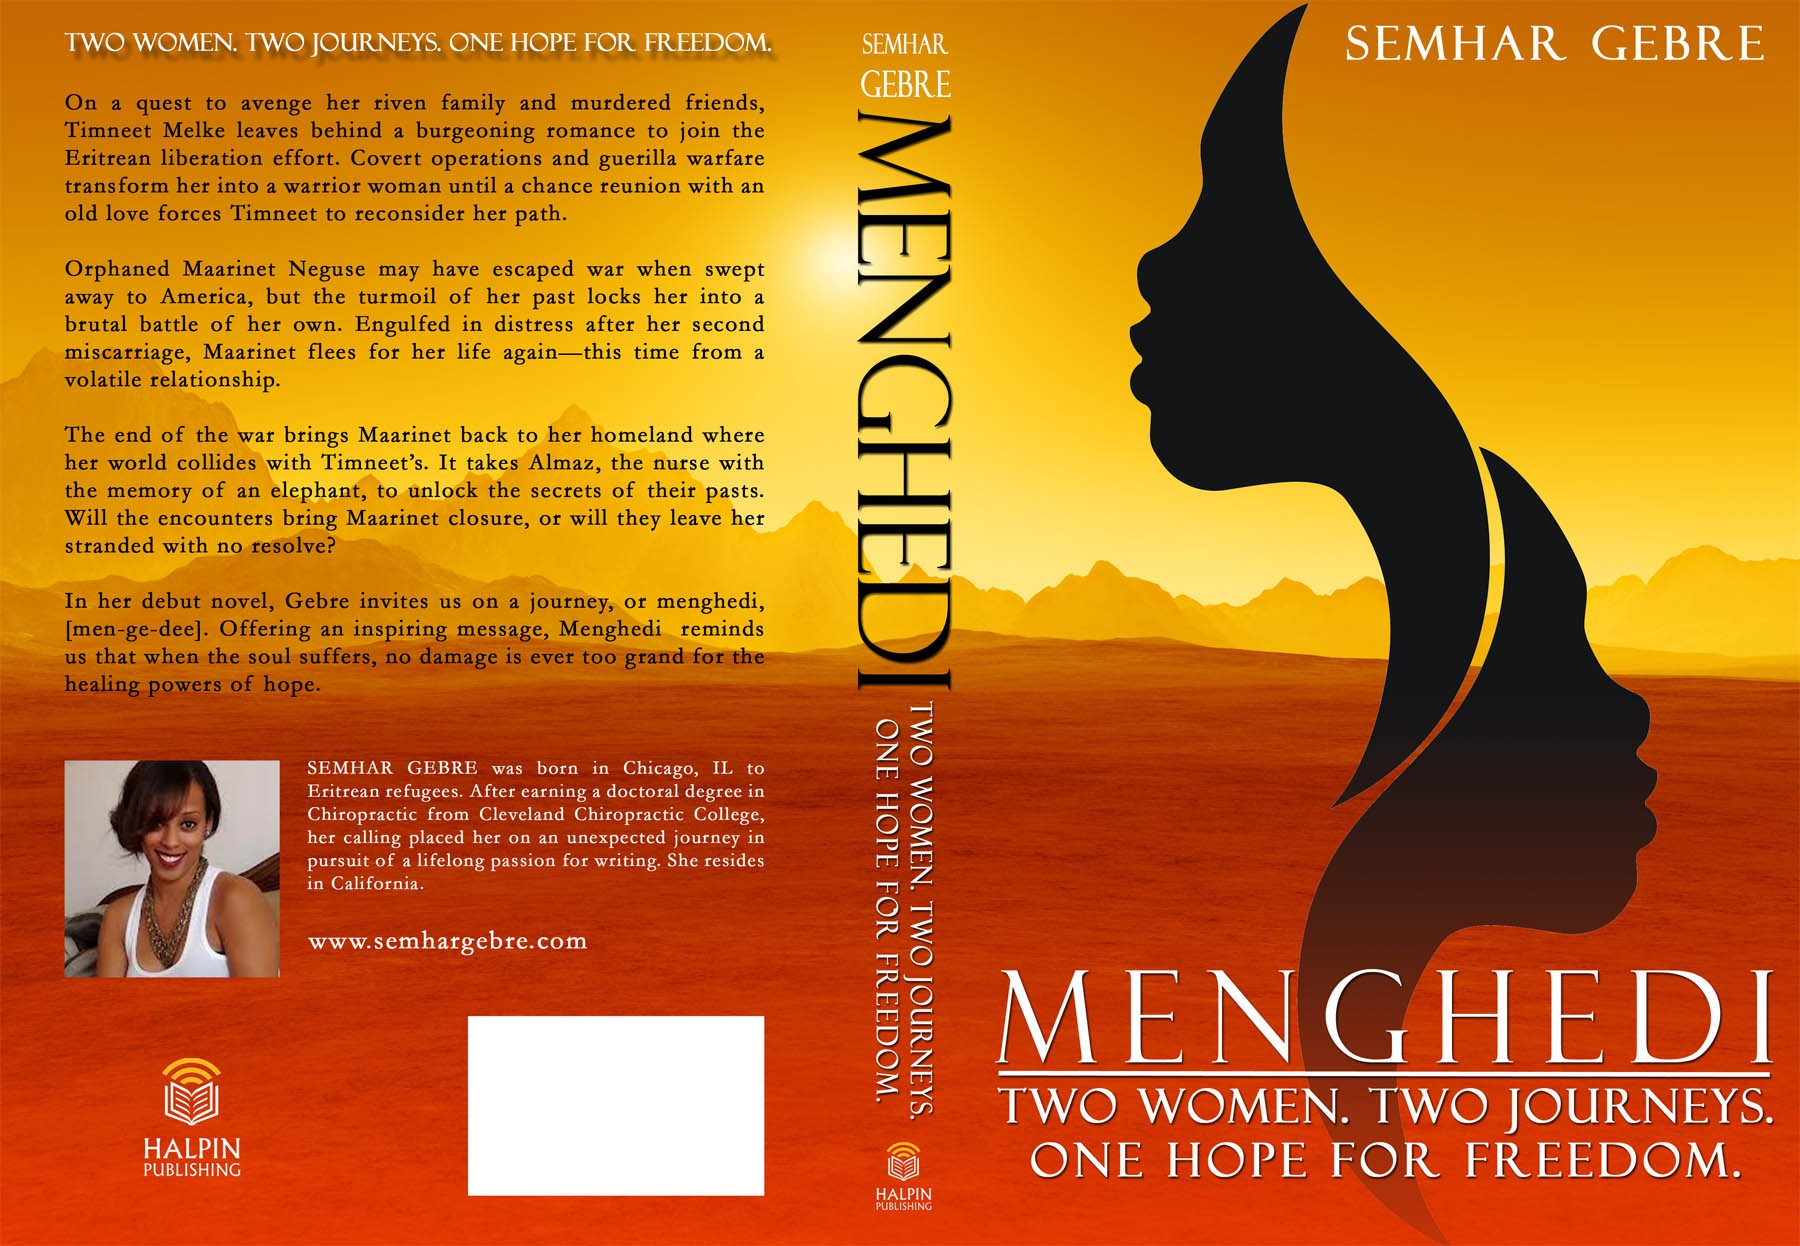 New book cover wanted for Menghedi: Two Women. Two Journeys. One Hope for Freedom.